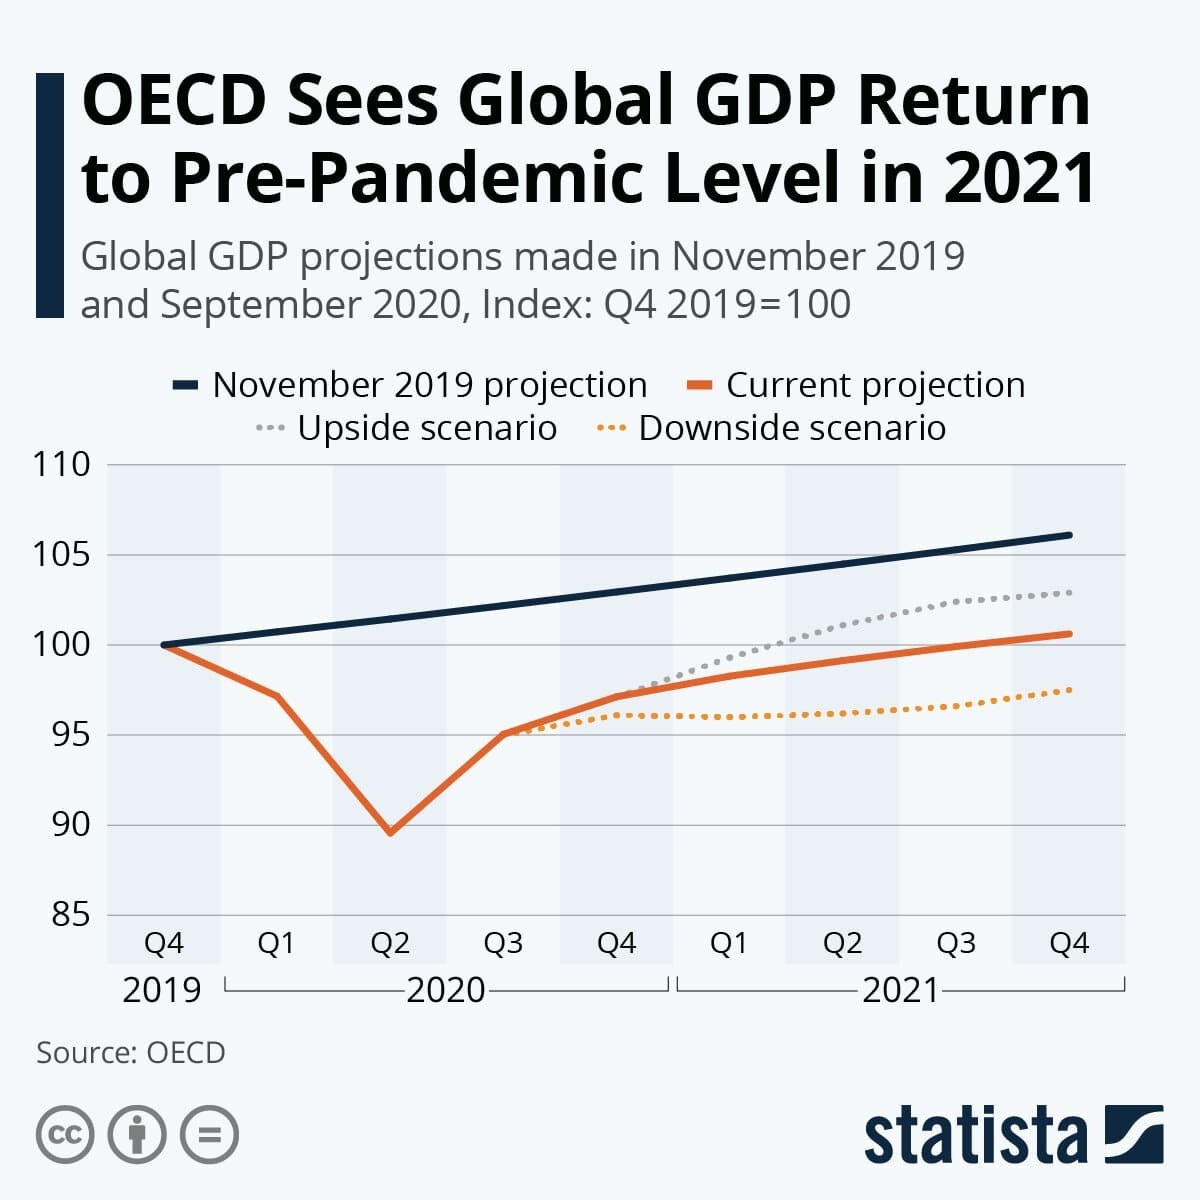 OECD Sees Global GDP Return to Pre-Pandemic Level in 2021